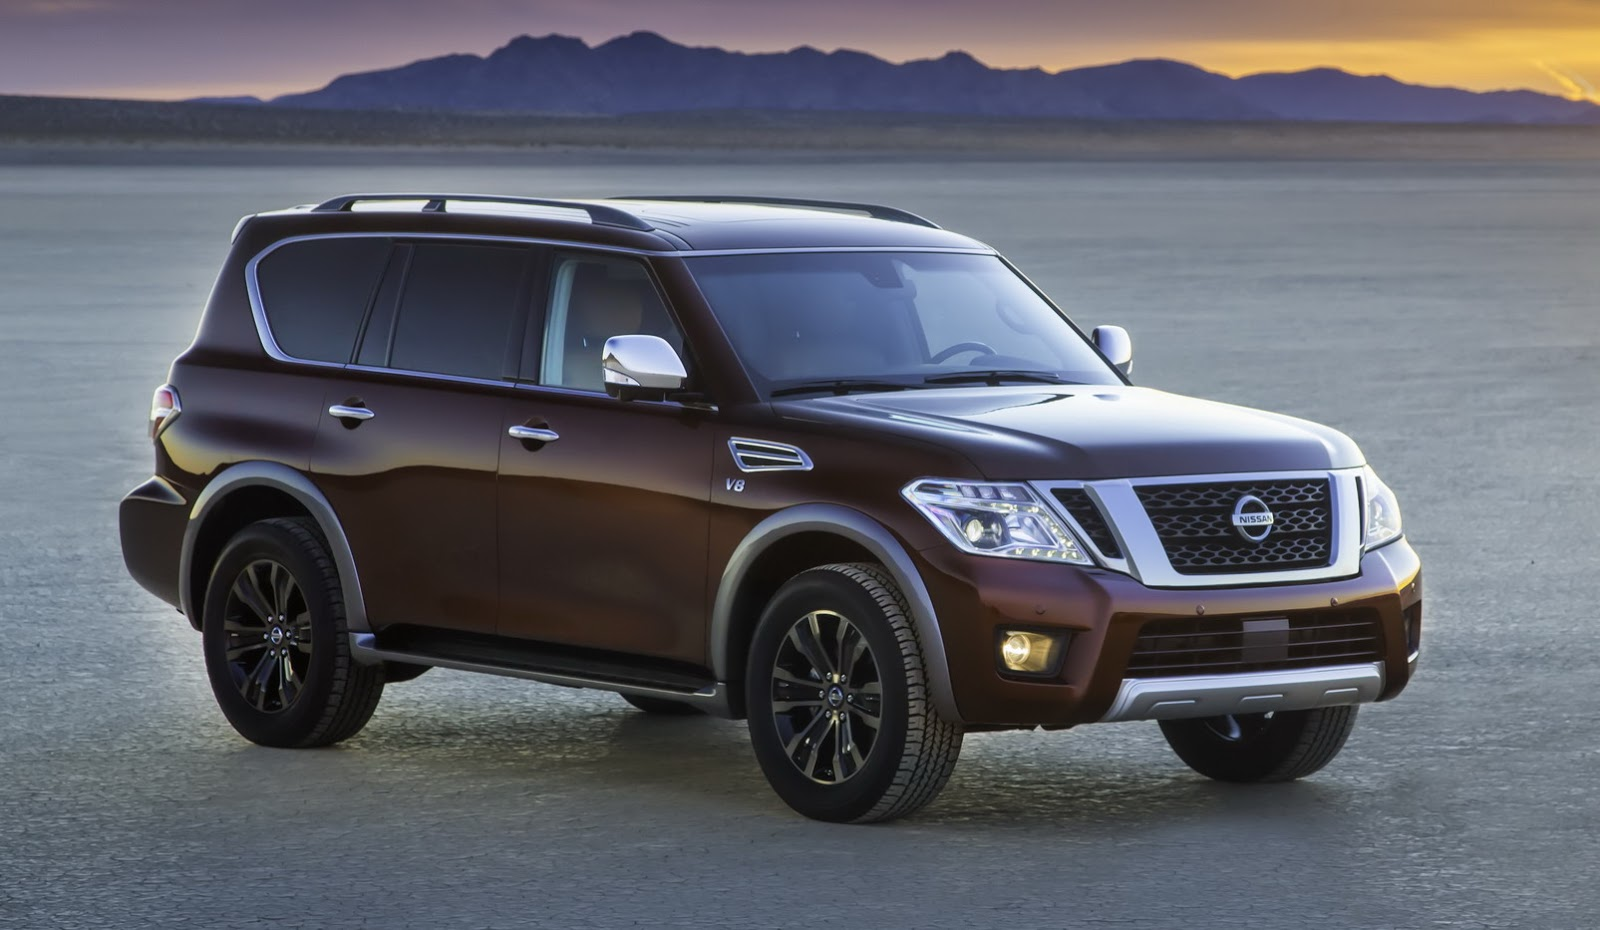 2017 Nissan Pathfinder Armada photo - 1